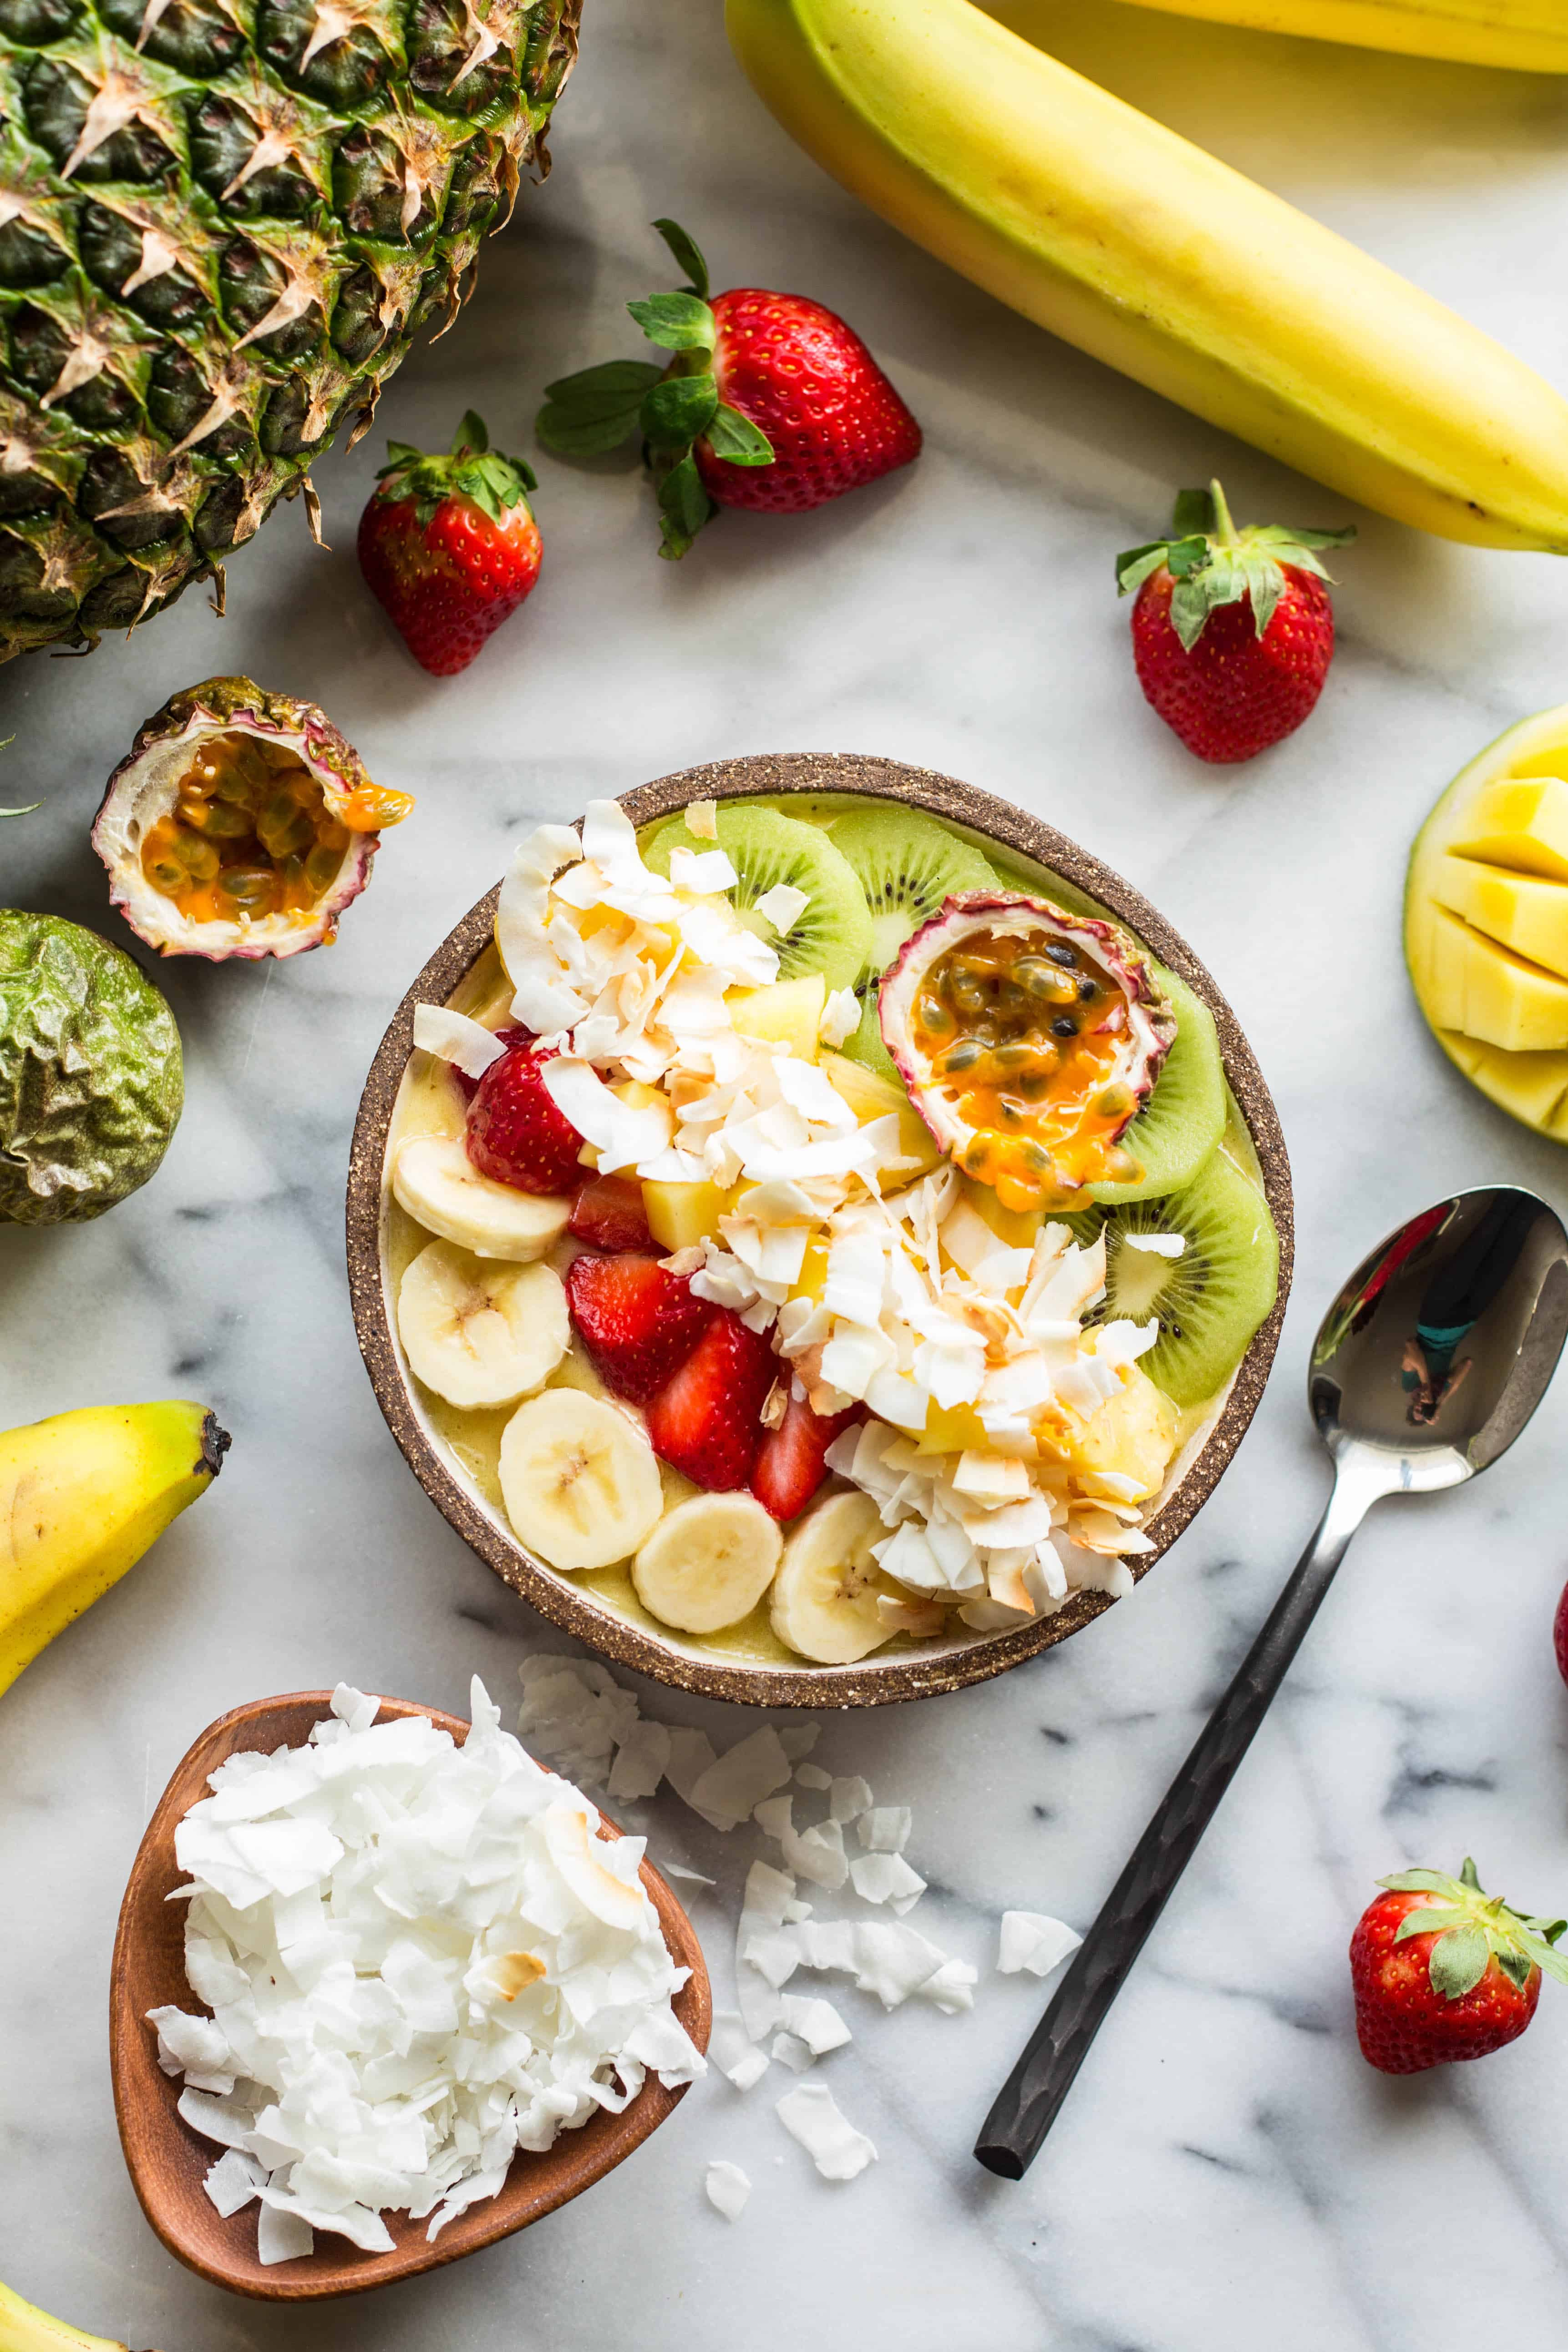 Tropical Smoothie Bowls (Video!)